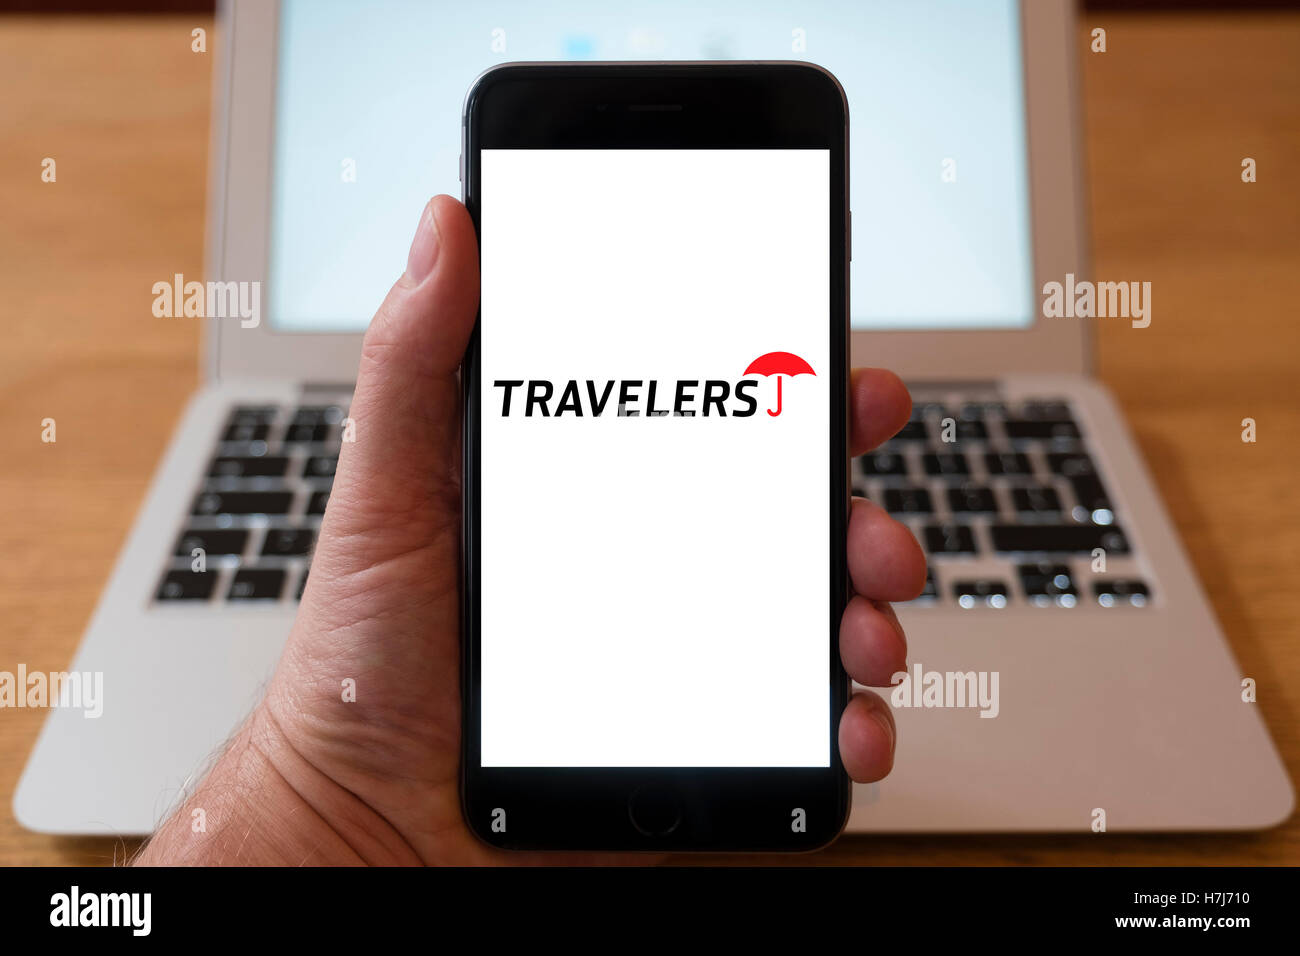 Using iPhone smartphone to display logo of Travellers insurance company - Stock Image